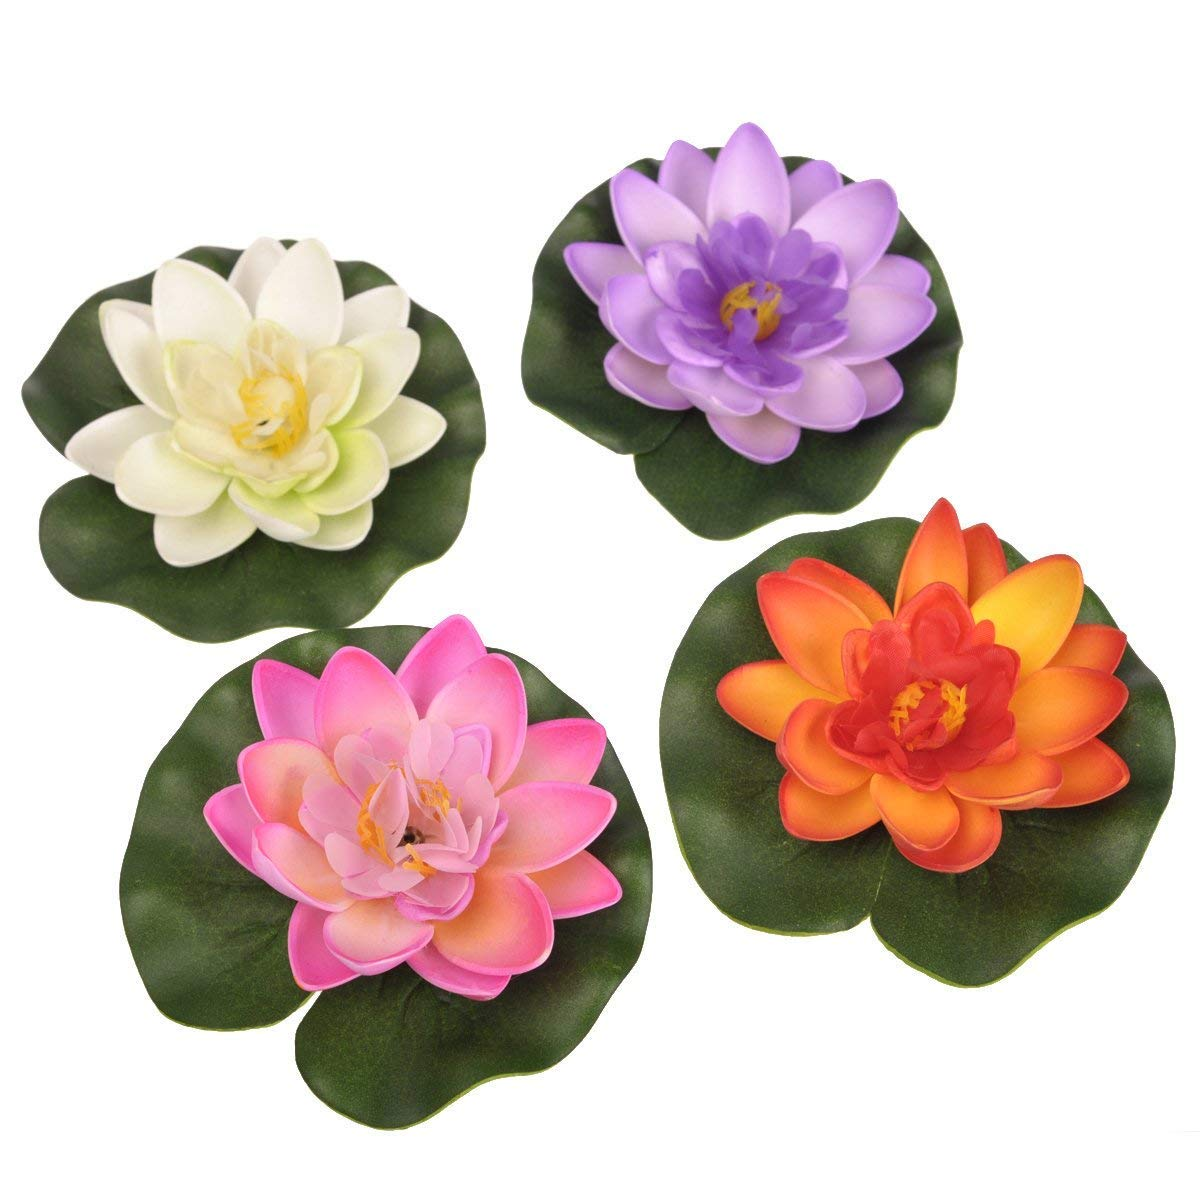 GIVBRO OnePlus Floating Pond Decor Water Lily//Lotus Foam Flower Set of 4 Small